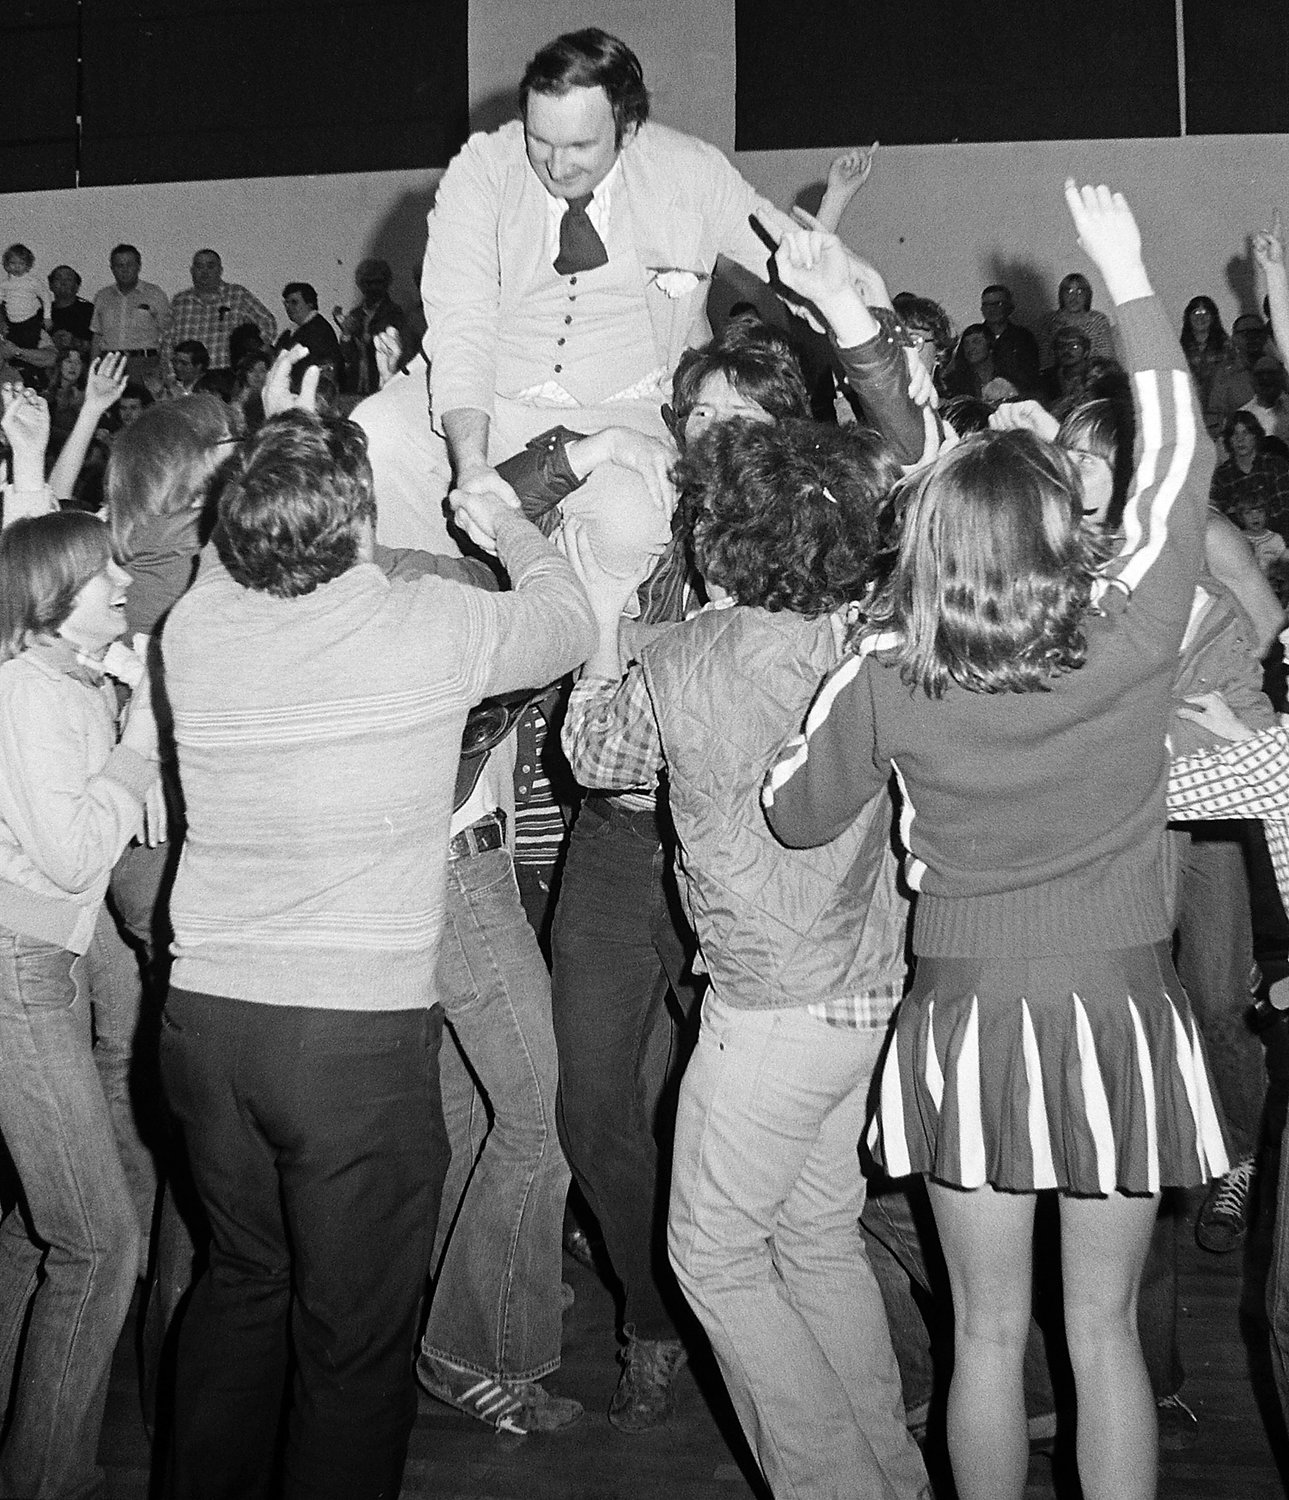 This Gazette bonus throwback appeared in the March 8, 1979 edition.